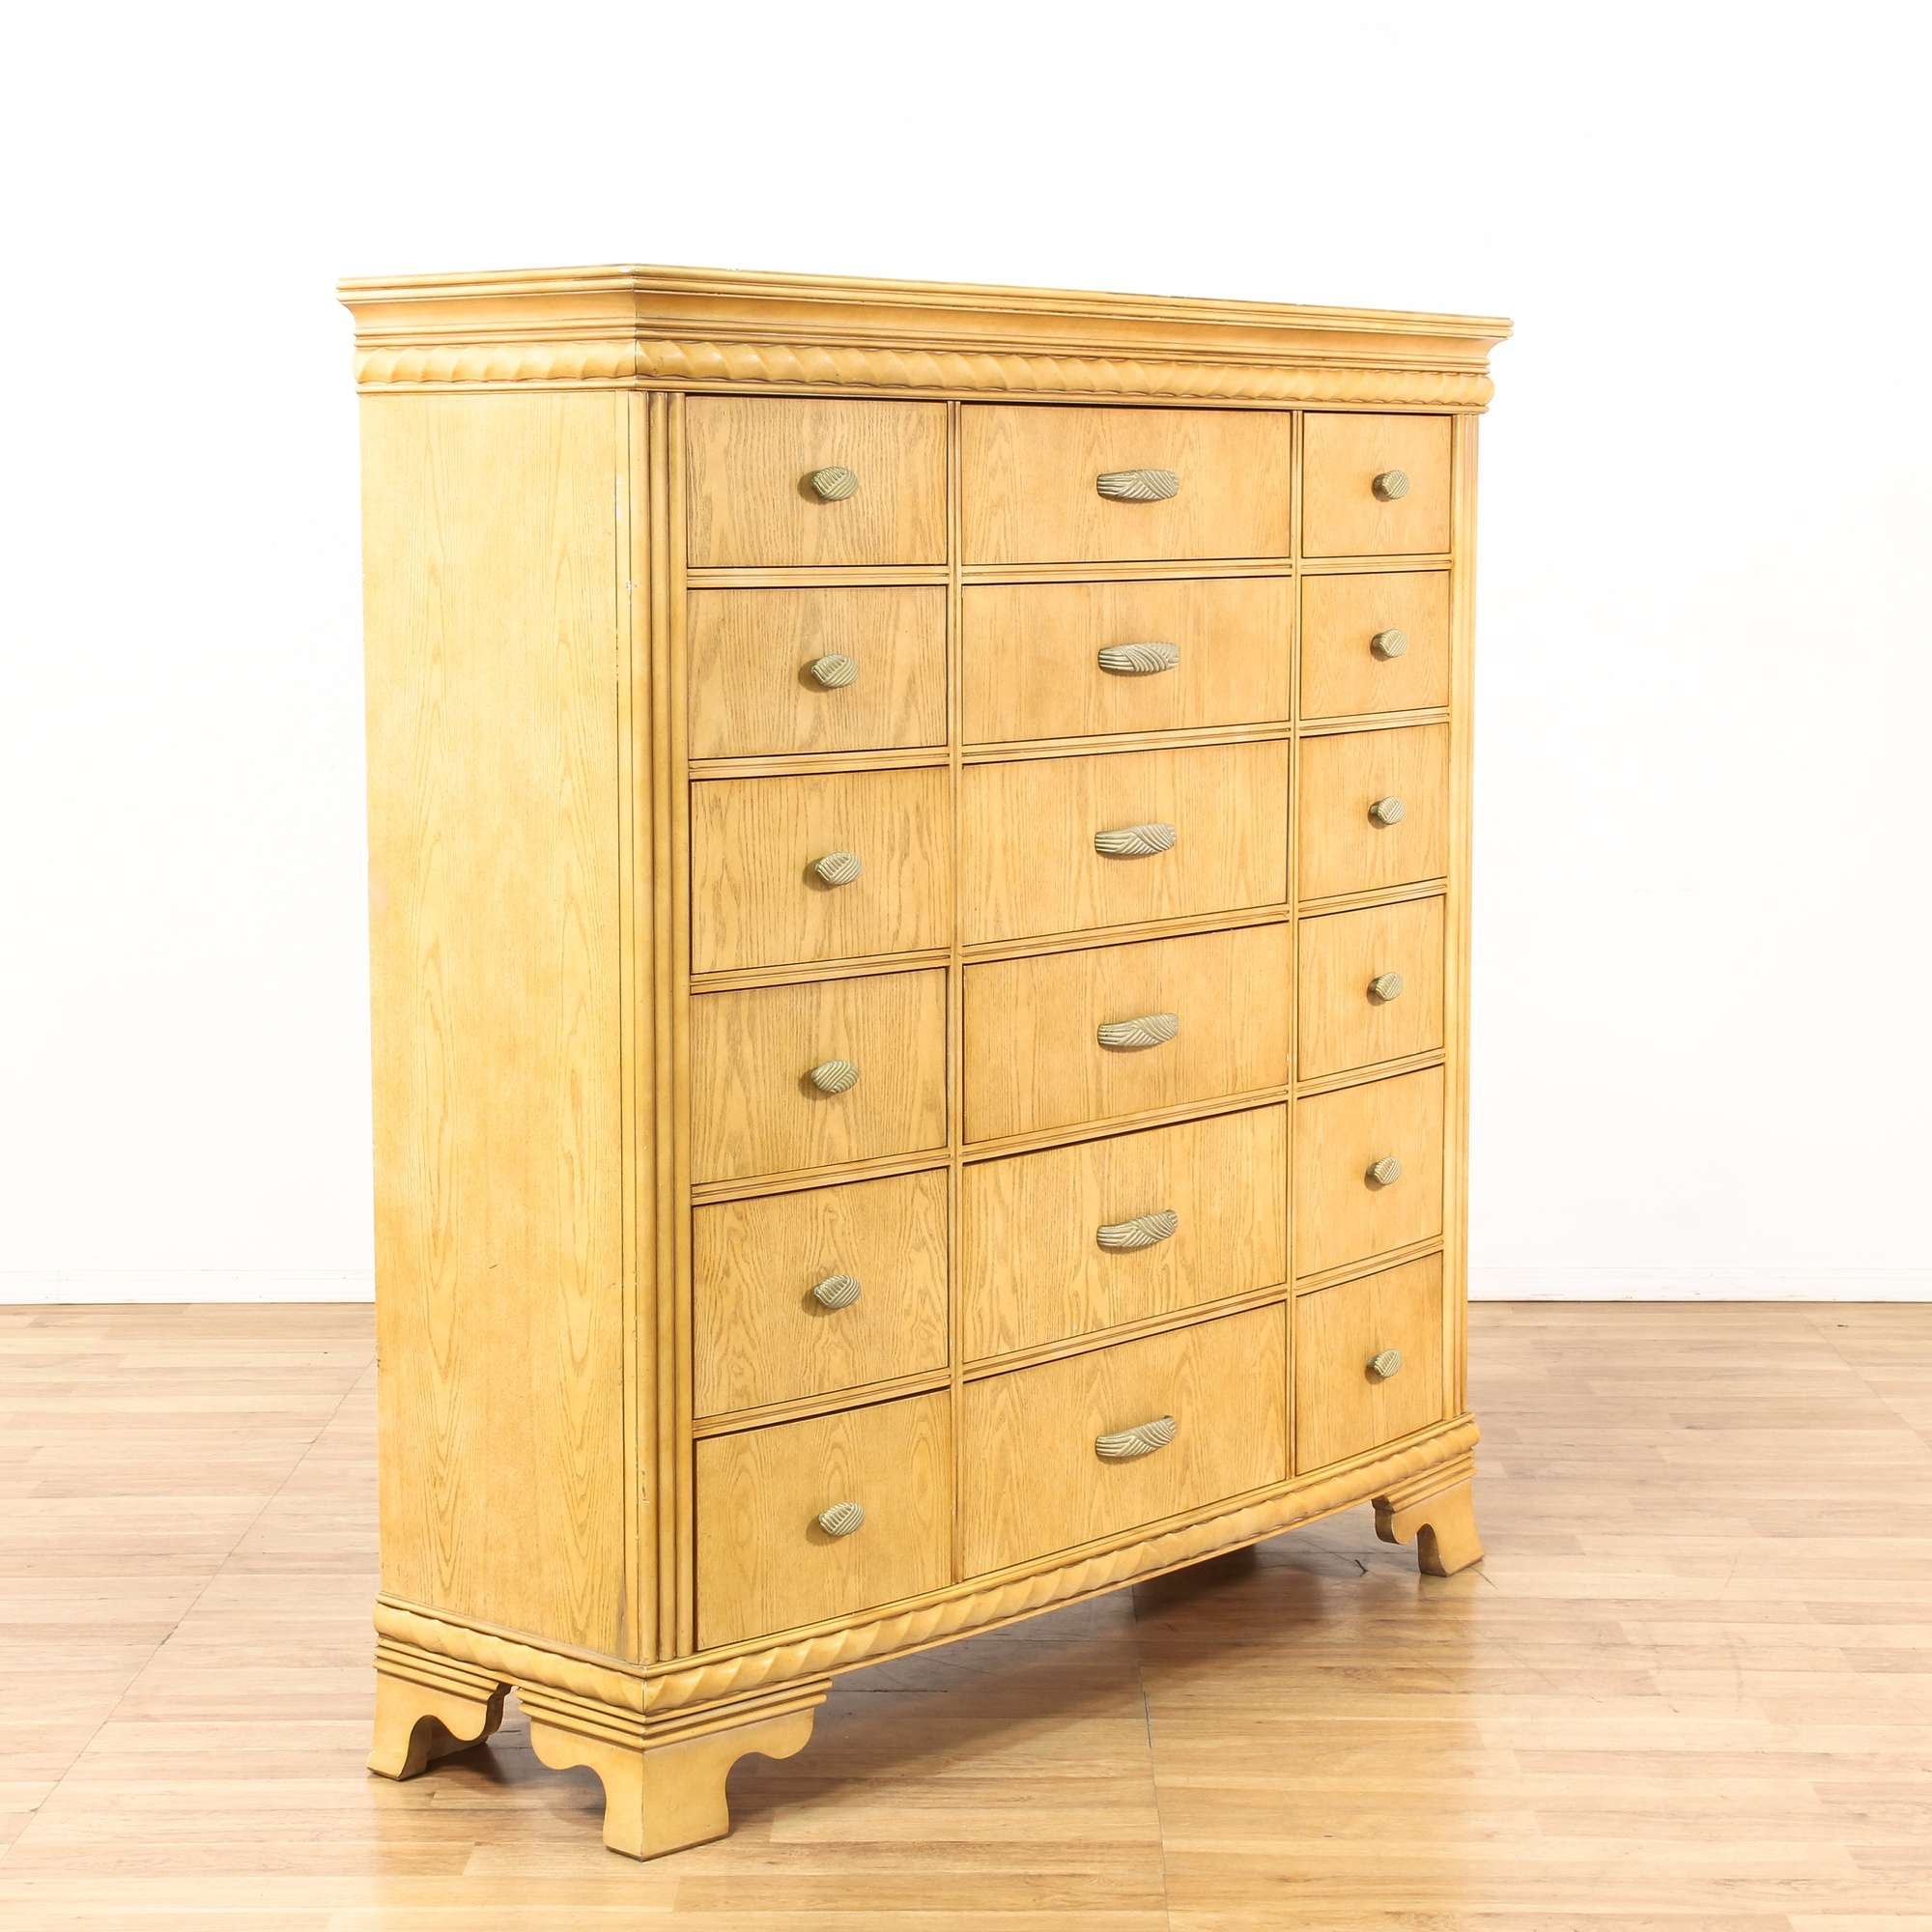 century art painted detail drawers large antiques swedish chest and of sweden drawer c